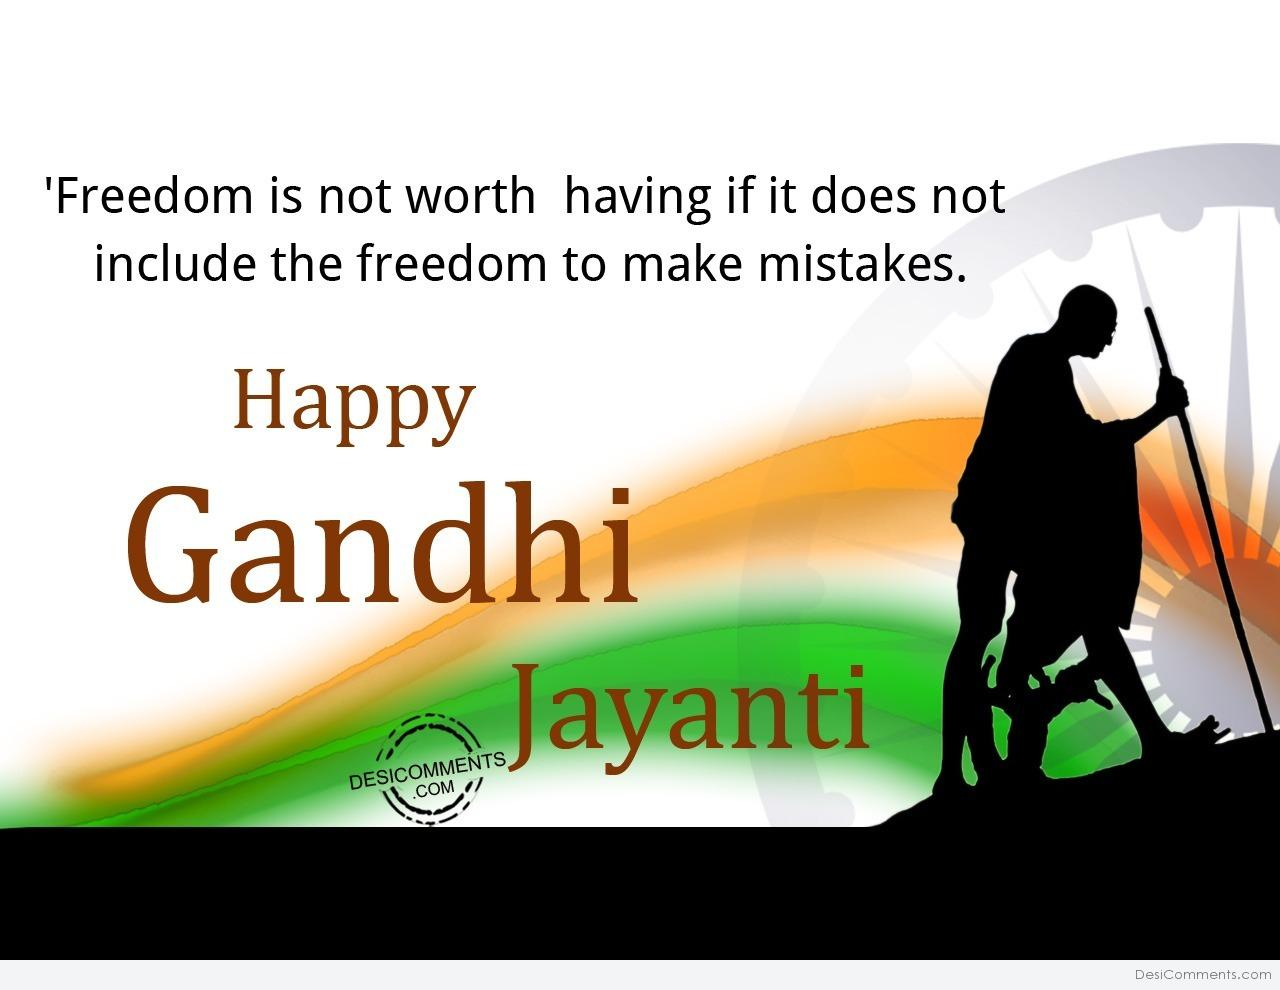 Gandhi Jayanti Pictures Images Graphics Page 2